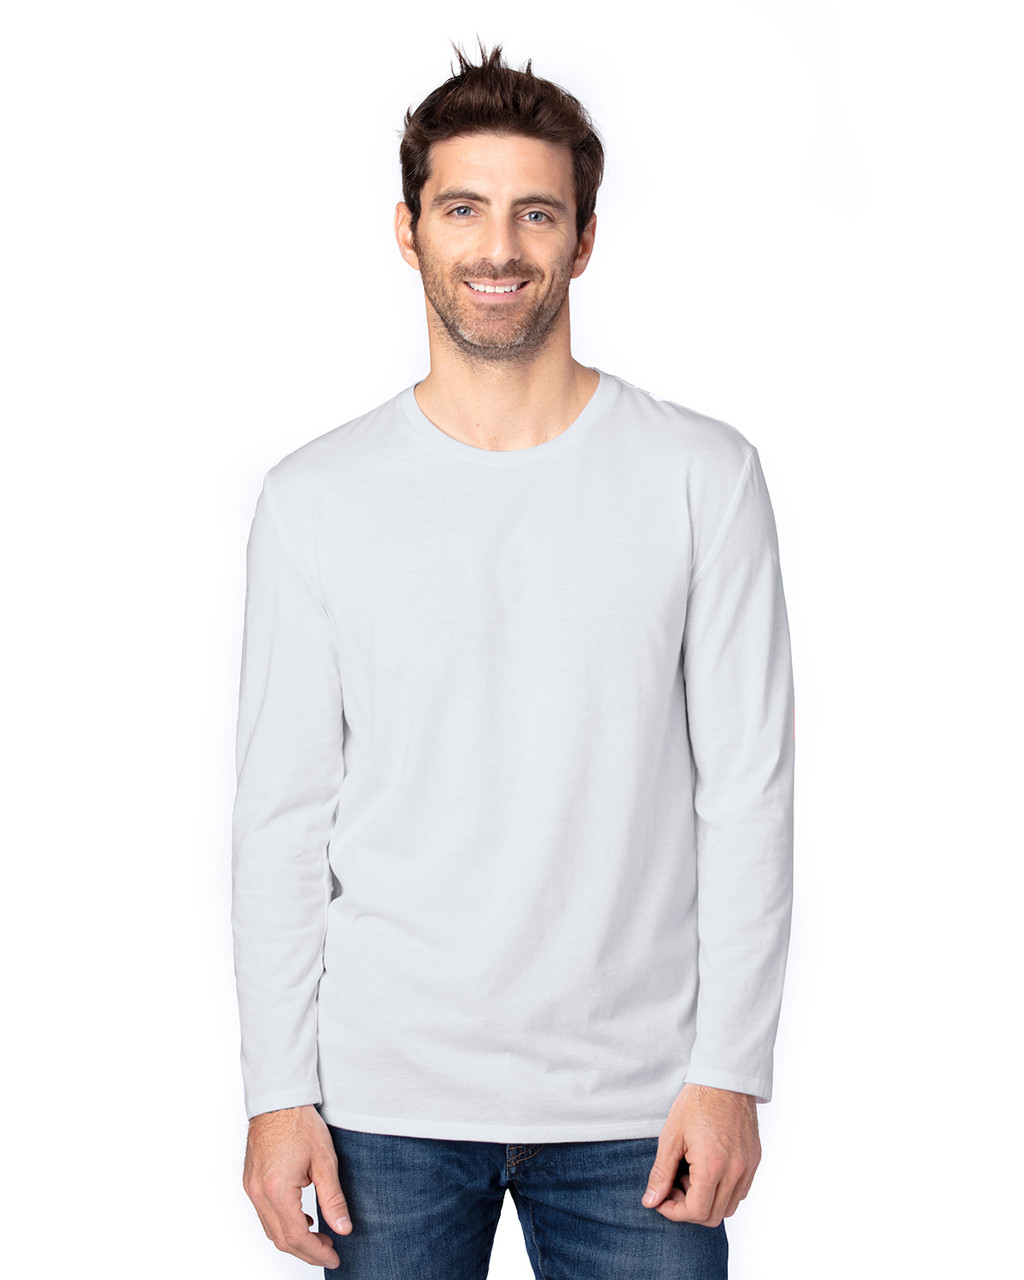 Silver - 100LS Threadfast Unisex Ultimate Long-Sleeve T-Shirt | T-shirt.ca